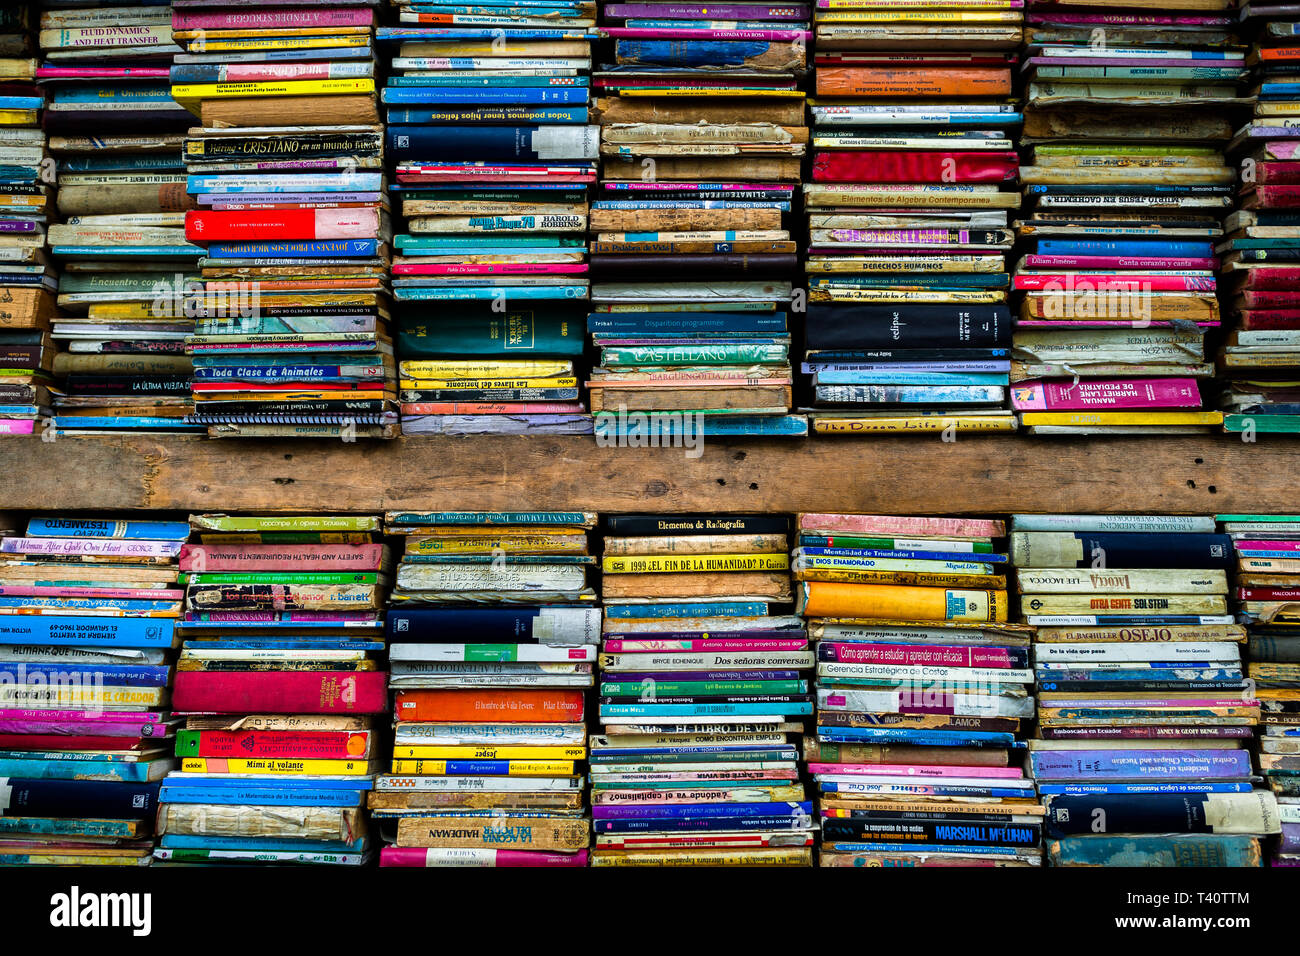 Spines of used books are seen stacked in shelves in a secondhand bookshop in San Salvador, El Salvador. - Stock Image